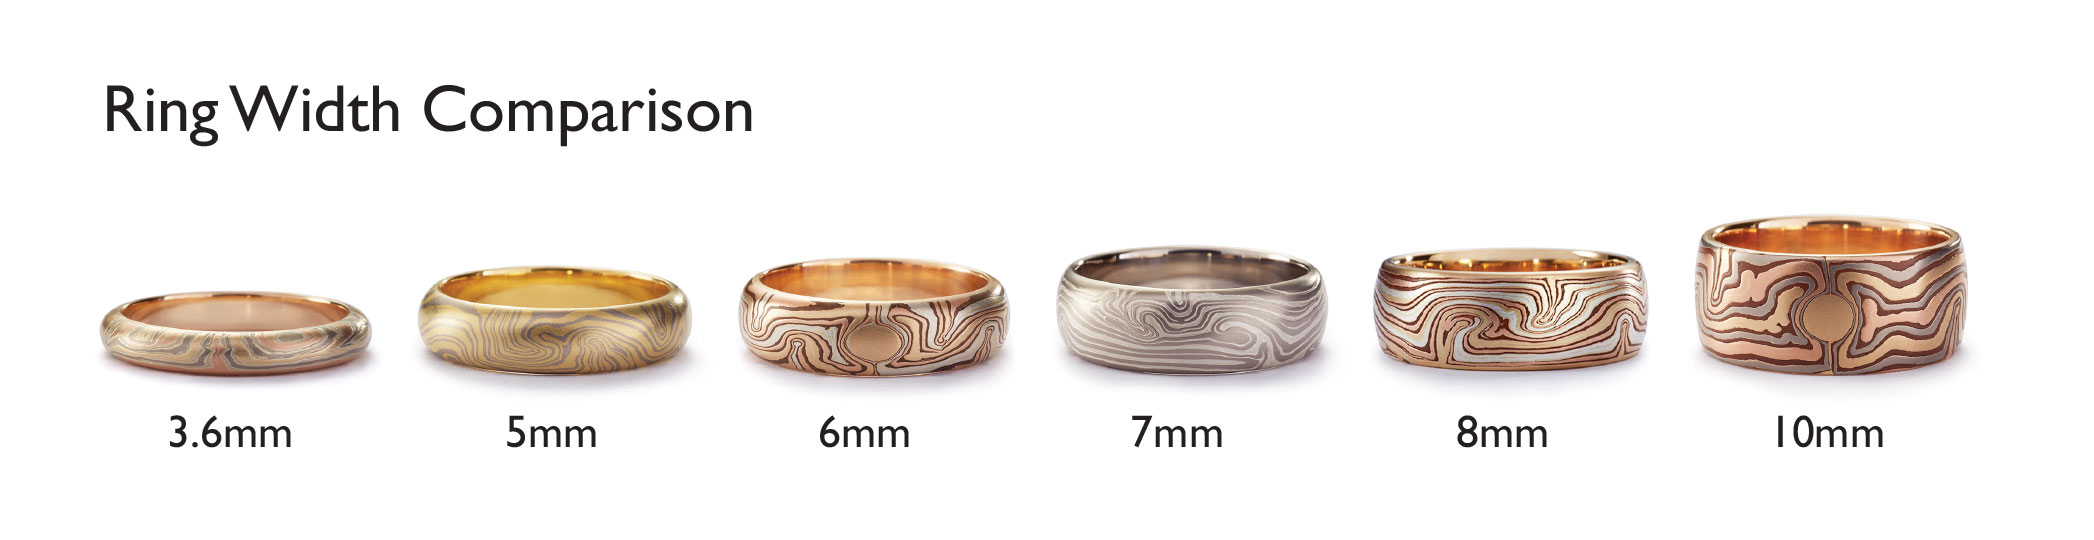 Mm Ring True To Size Image